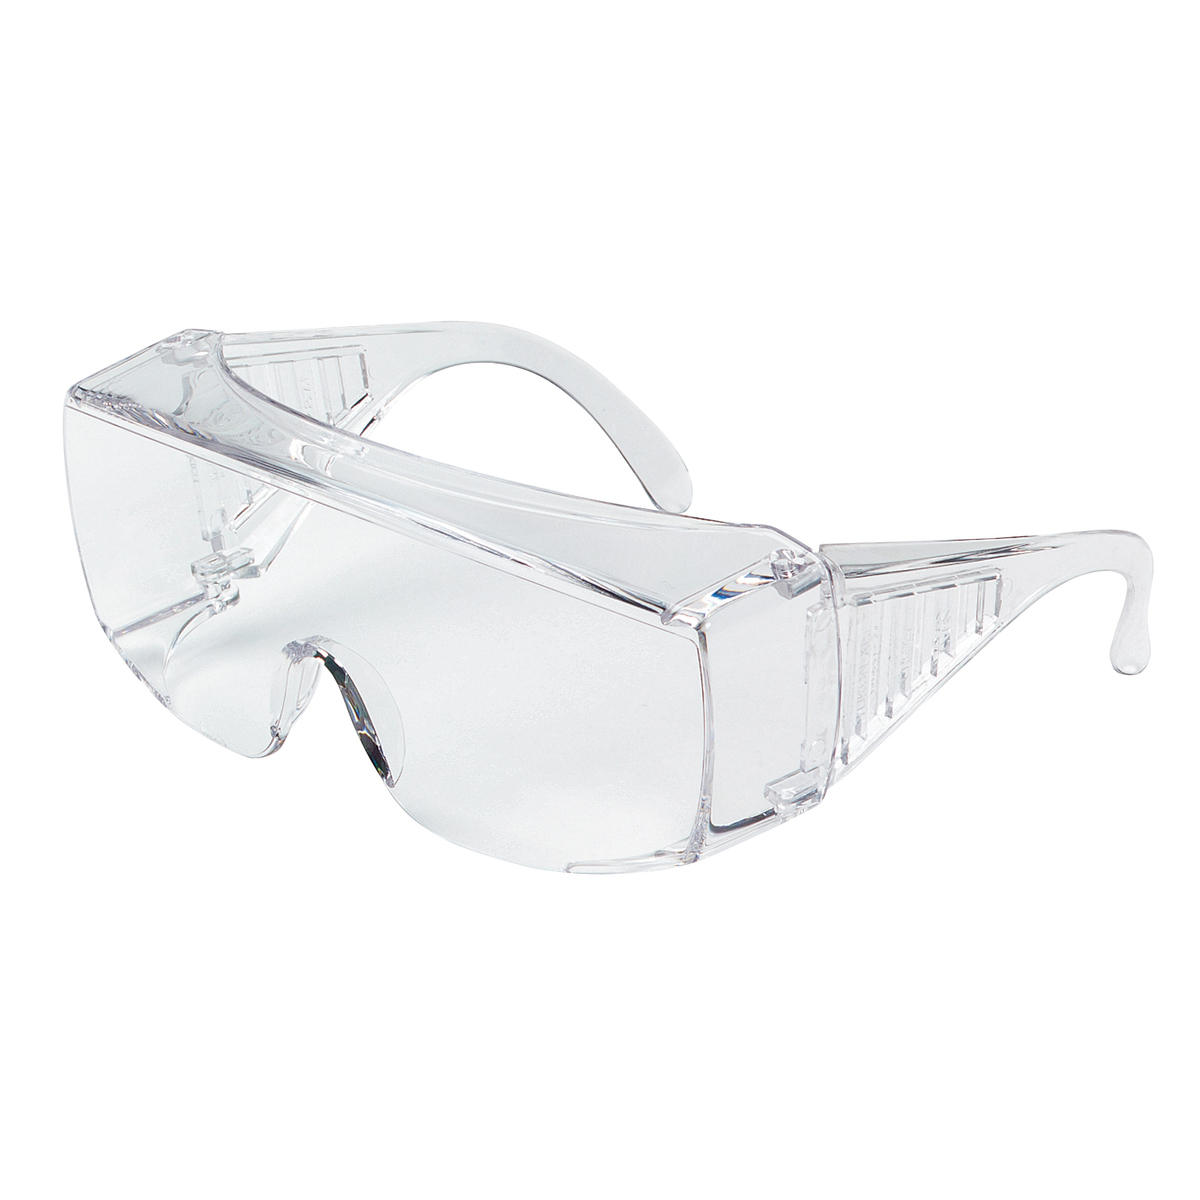 Safety Glasses with Clear Uncoated Lens Larger Design for Over the Glass Use